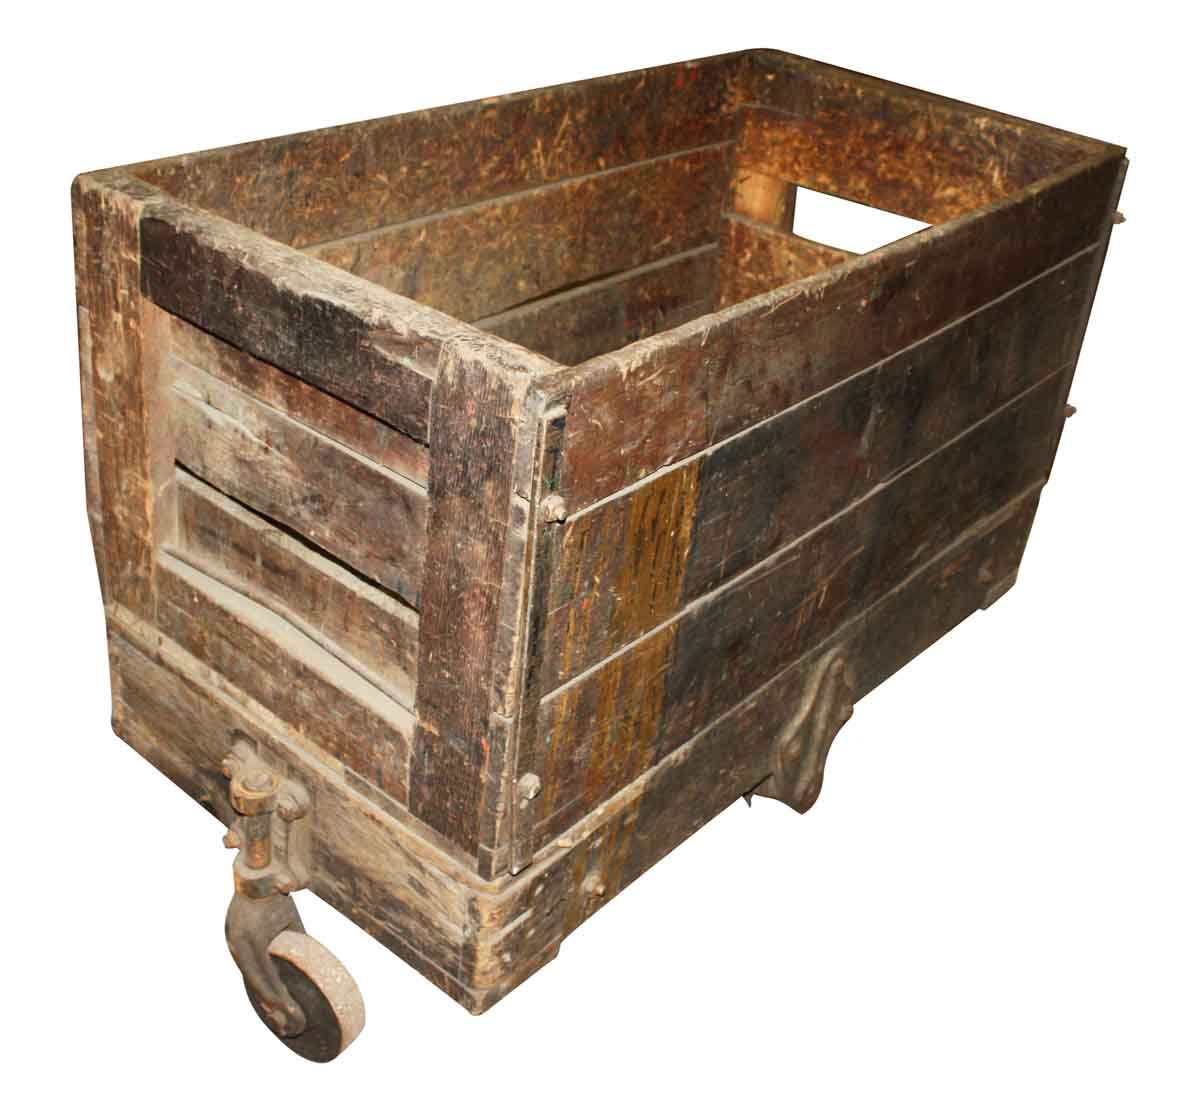 Terrific Antique Wooden Crate Cart